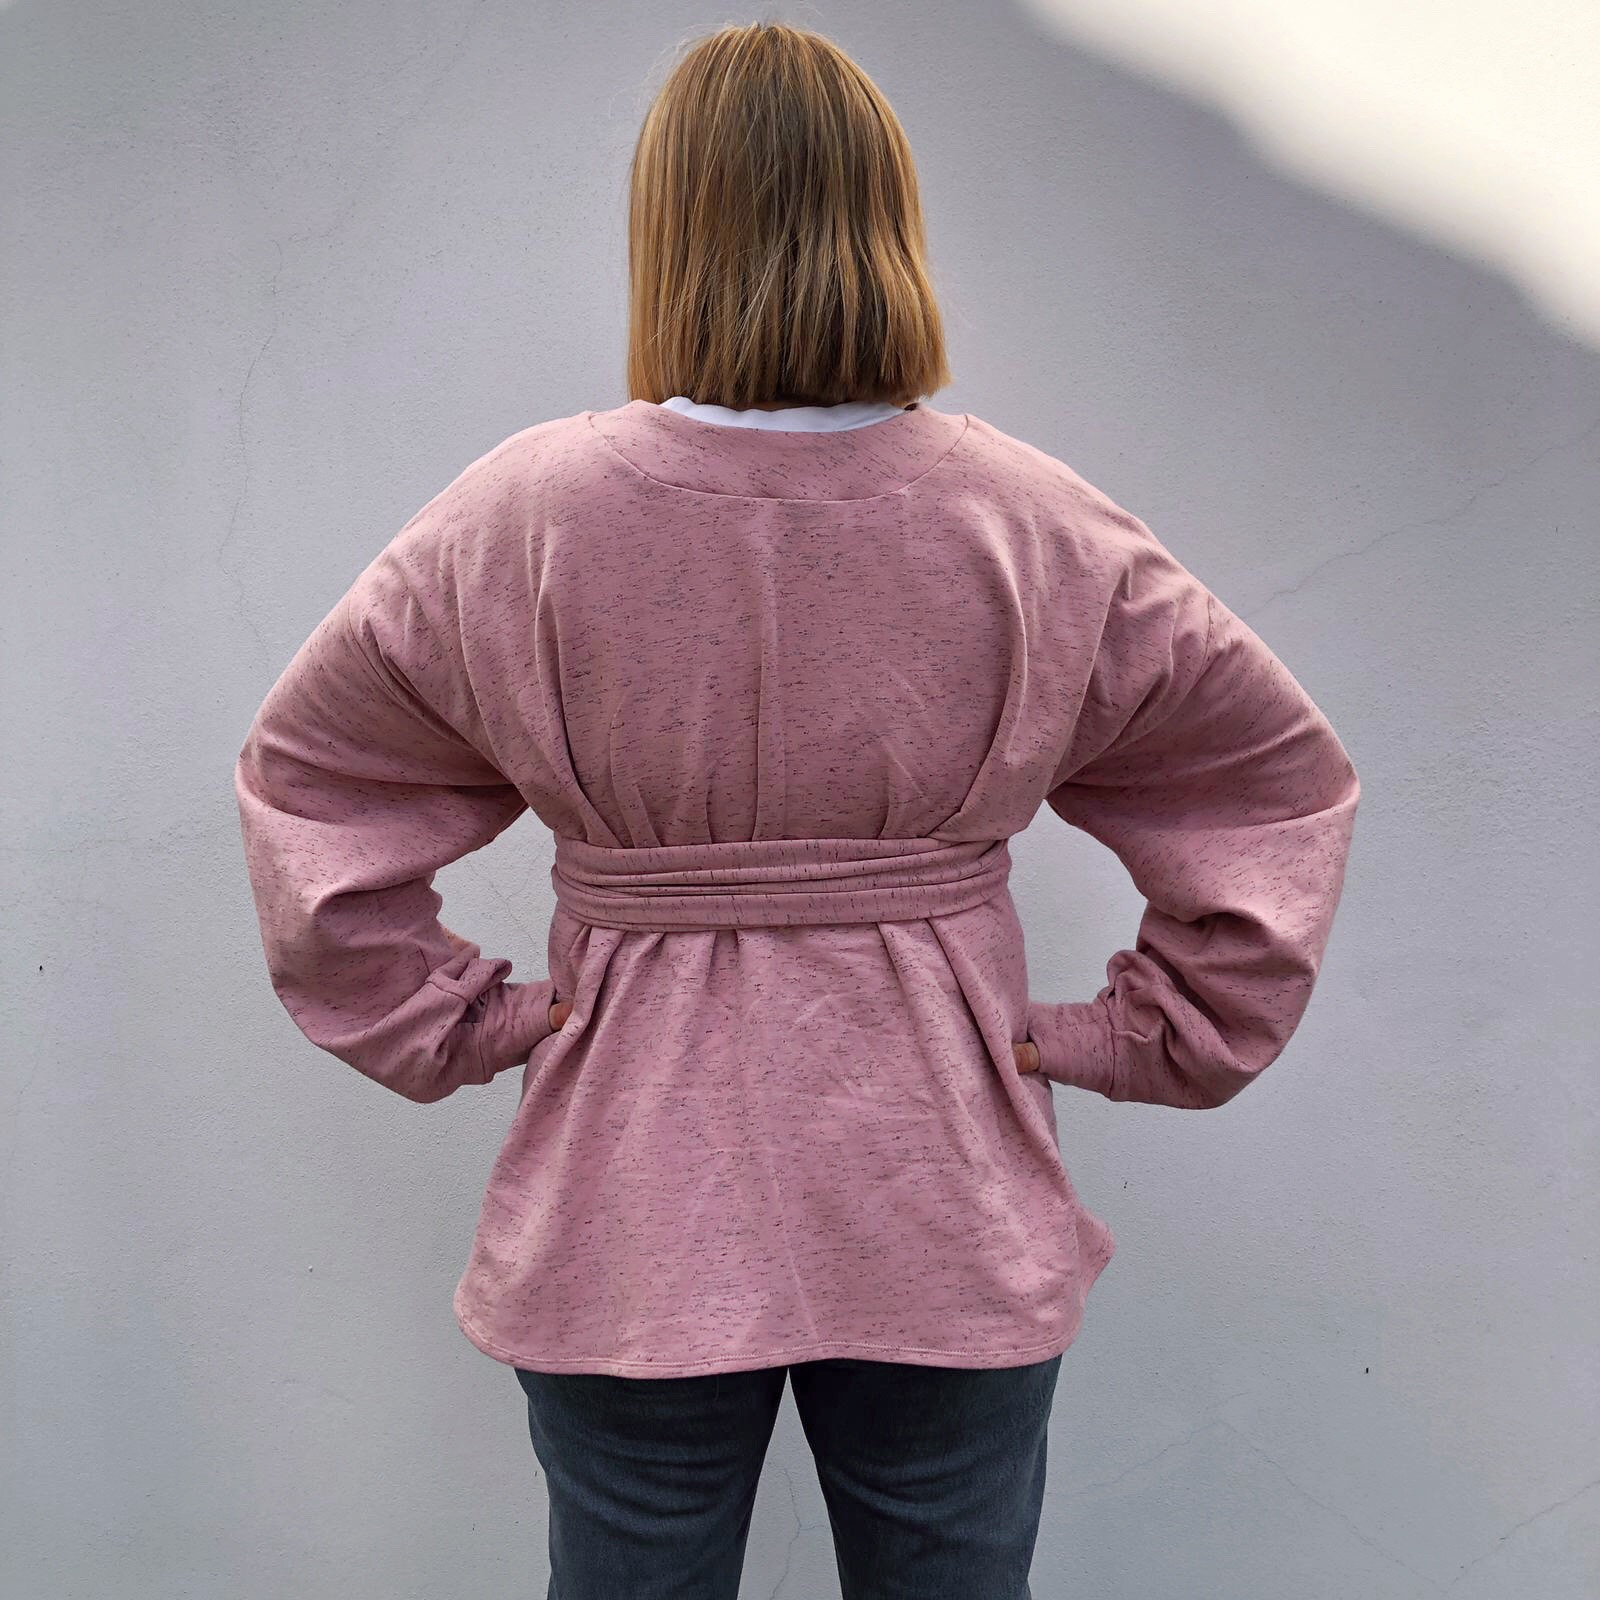 Cut One Pair - Louise's DPL Belted Sweater